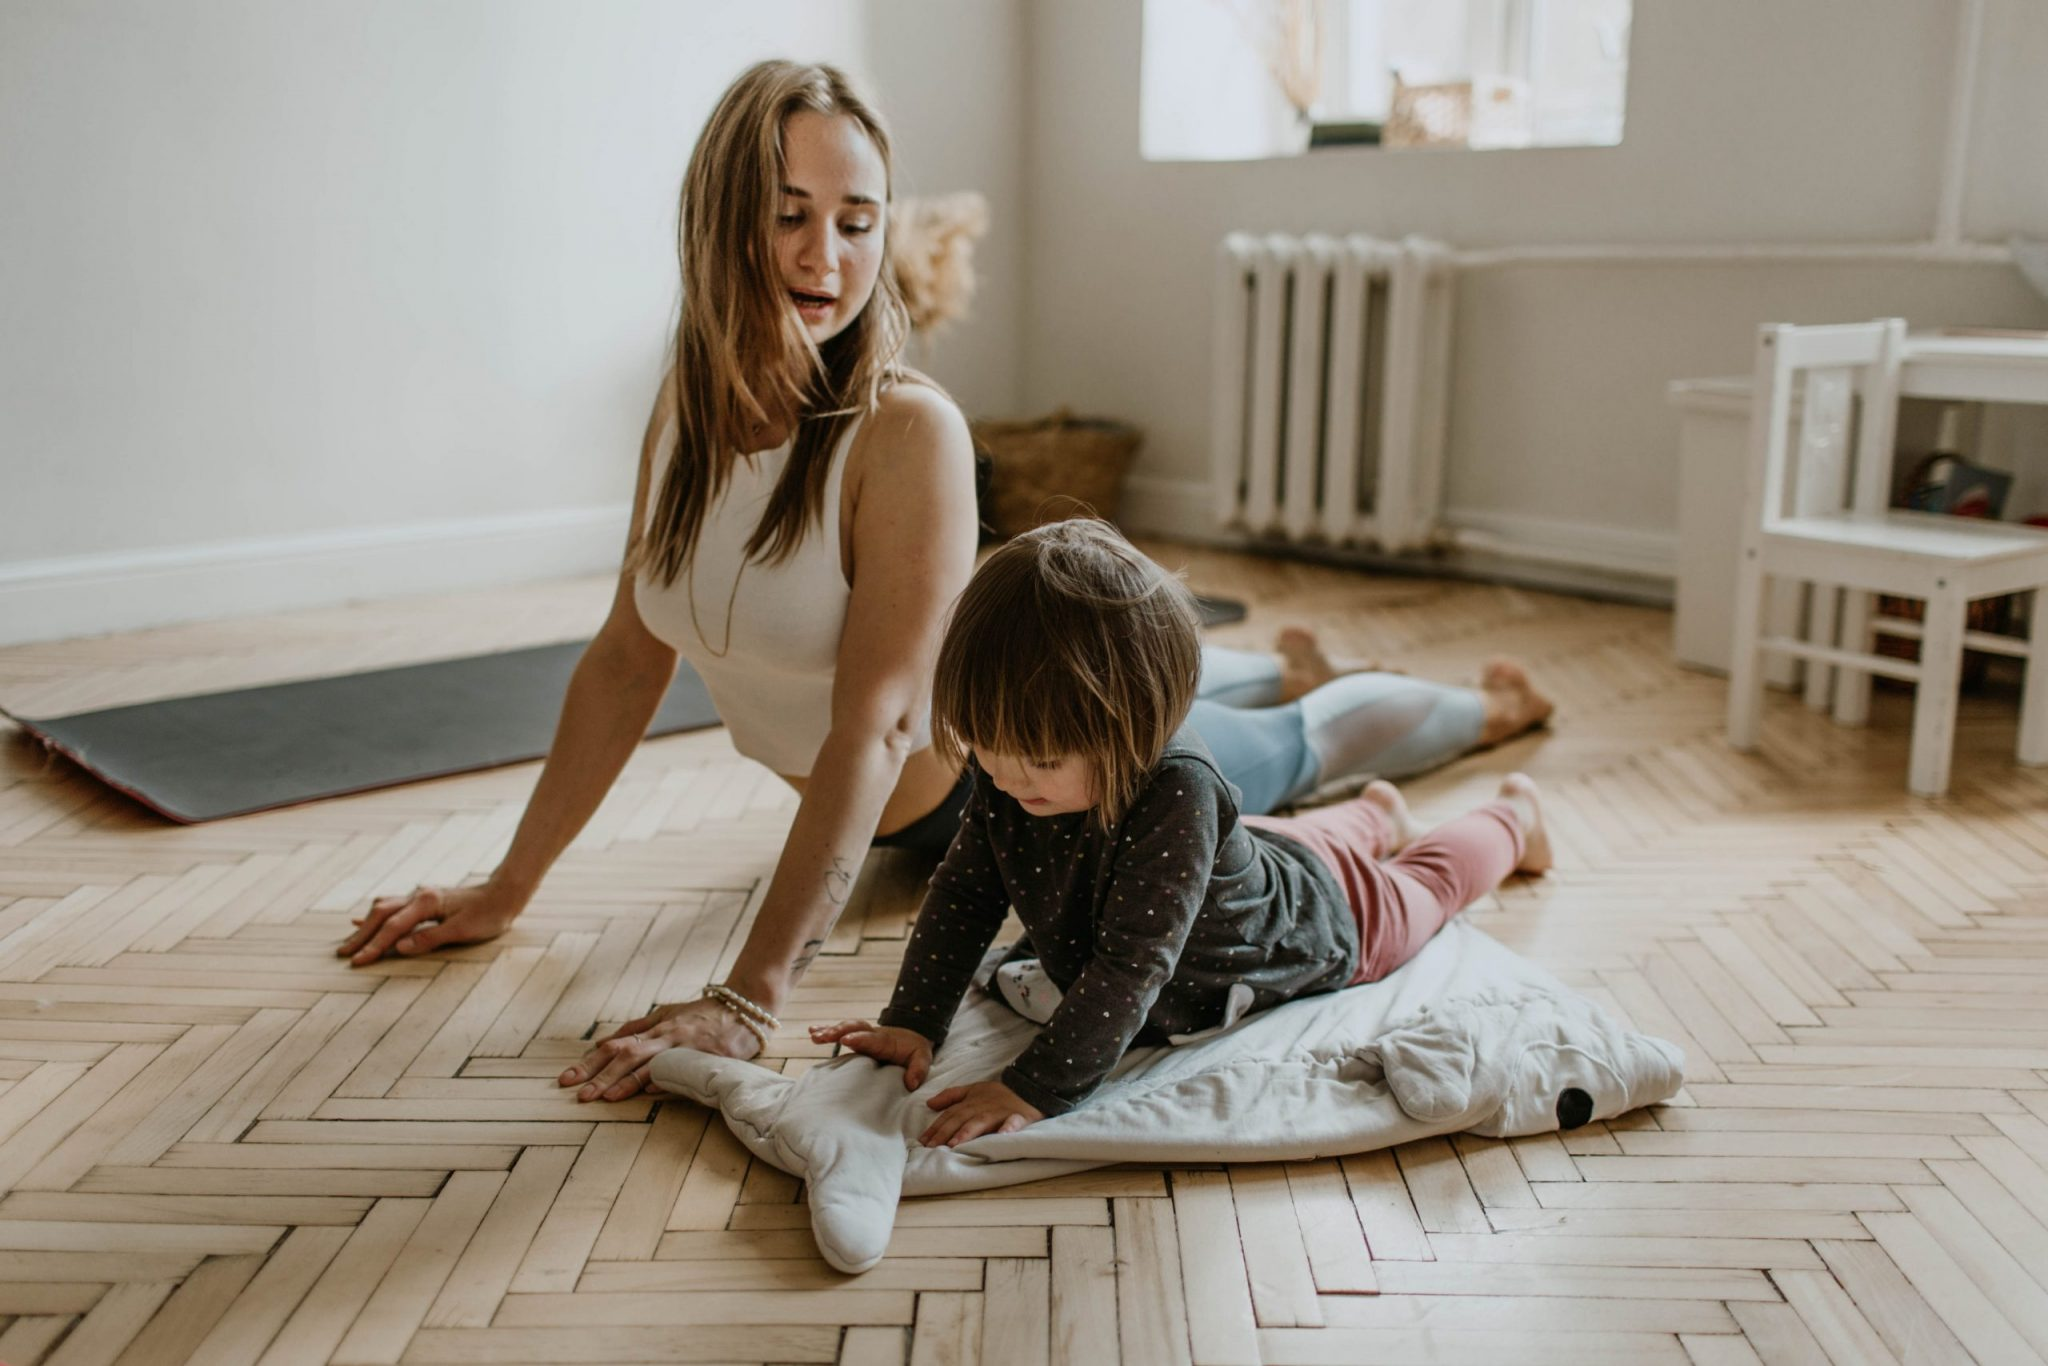 MOTHER AND KIDS YOGA MENTAL HEALTH. PHOTO VALERIA USHAKOVA / PEXELS